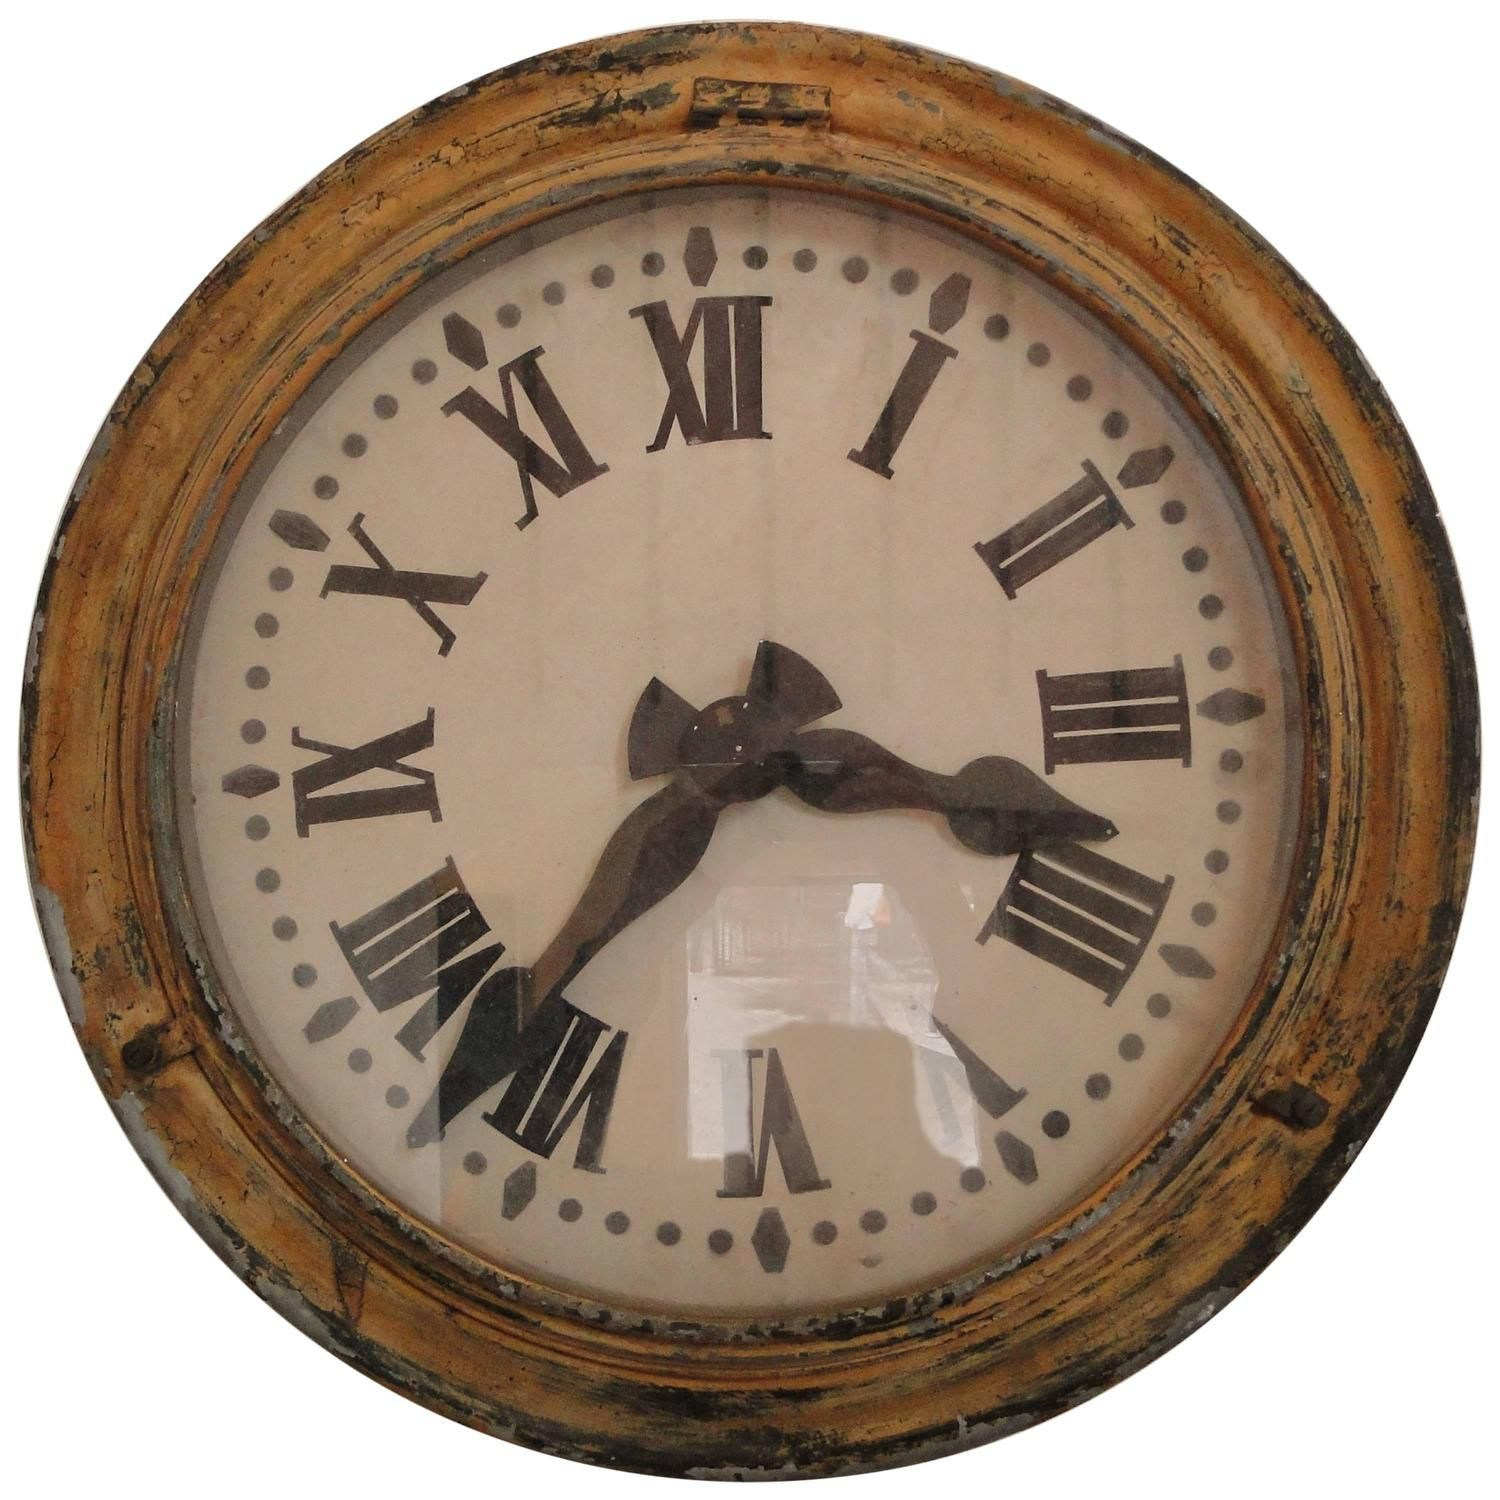 French Brillie Railway Clock Painted Metal 1930s Antique Wall Clocks Clock Diy Clock Wall